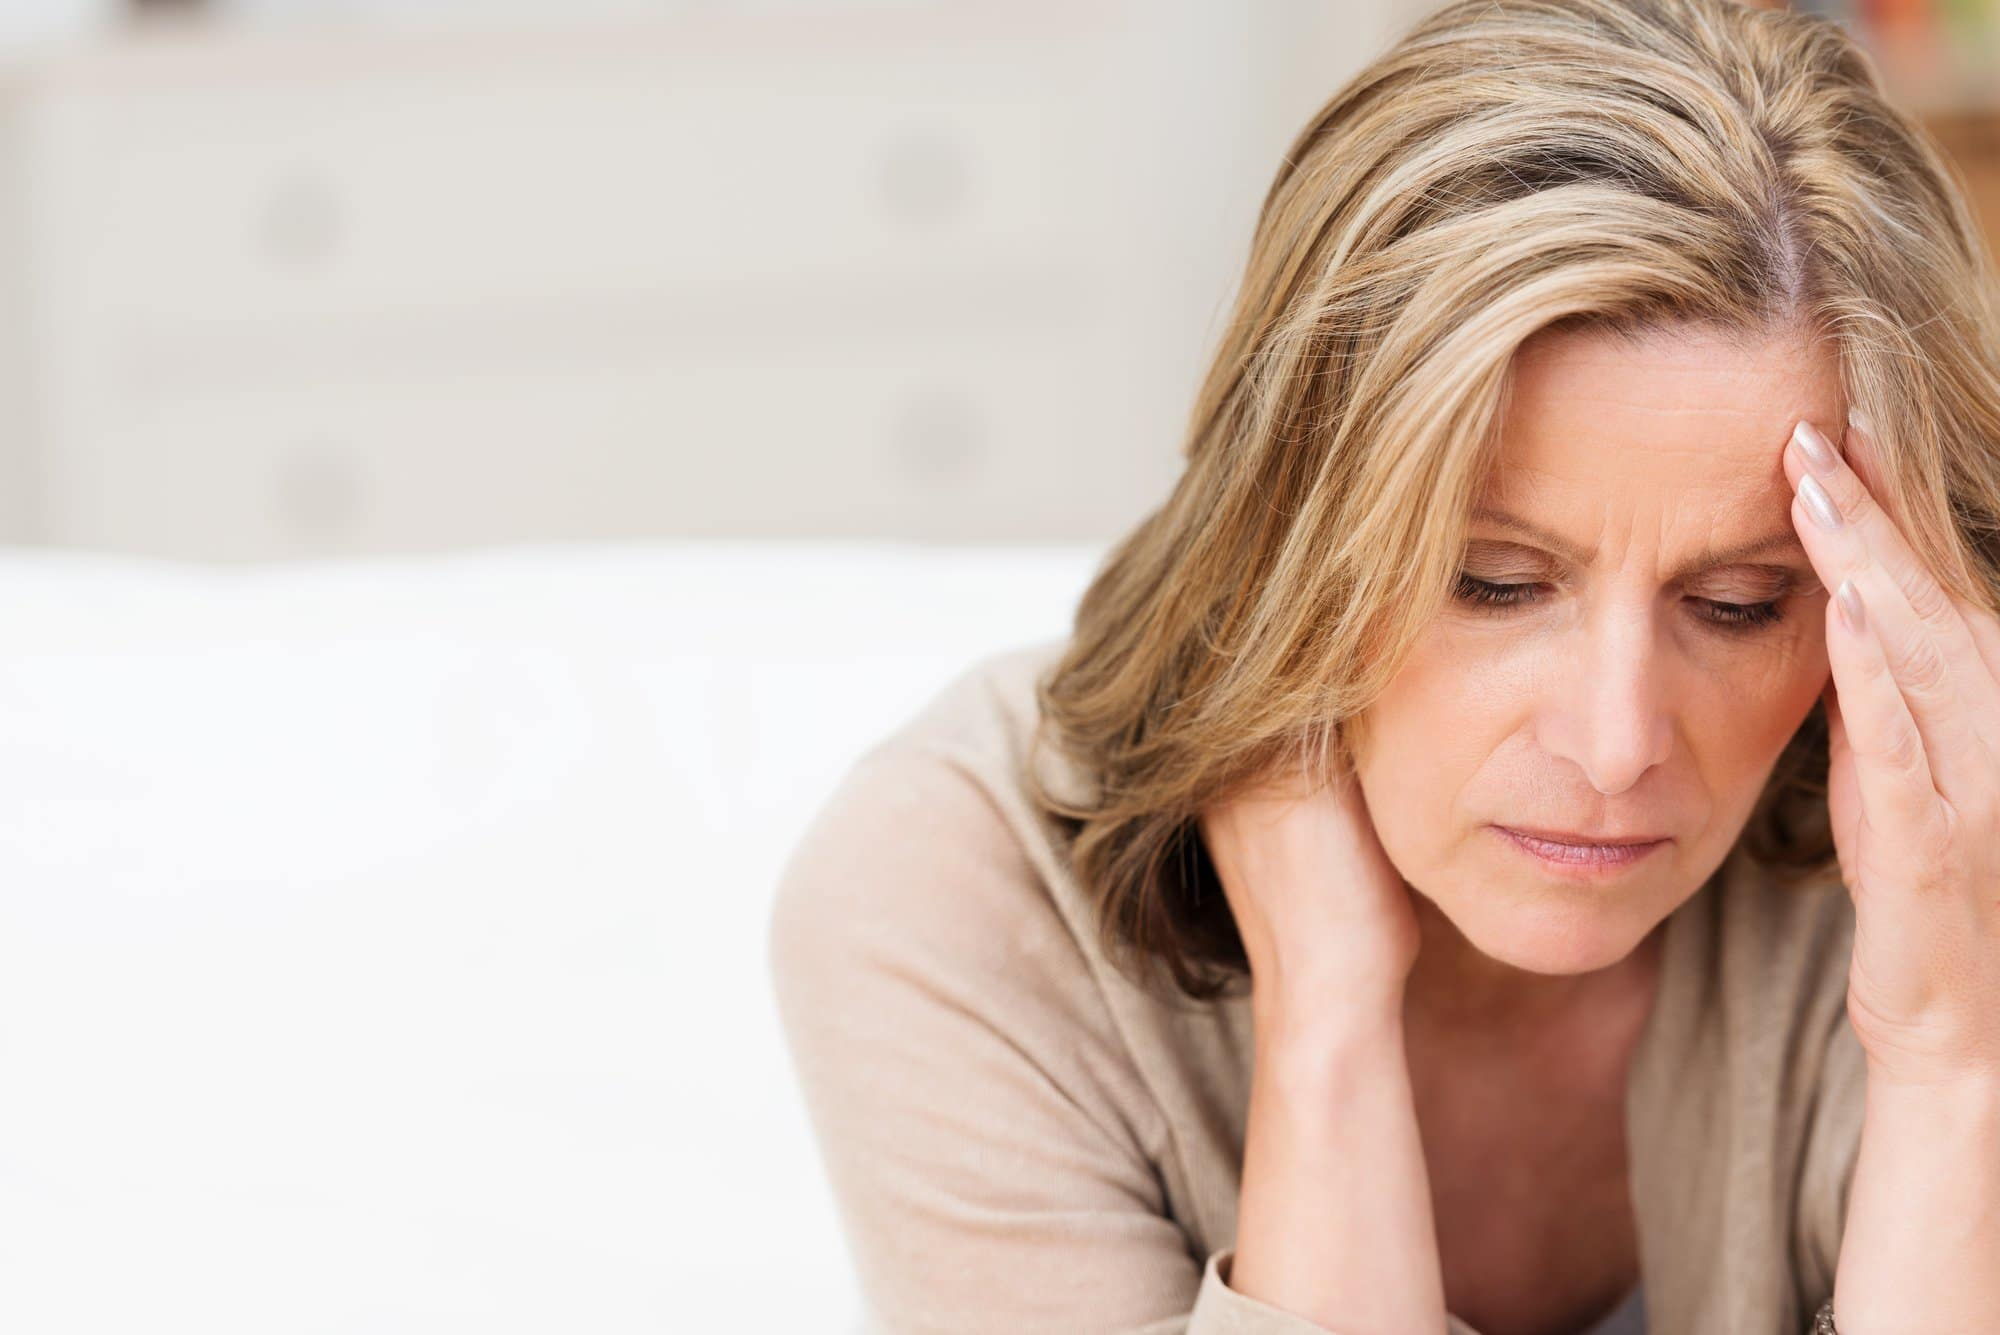 When Middle-Aged Women Struggle with Bulimia Nervosa